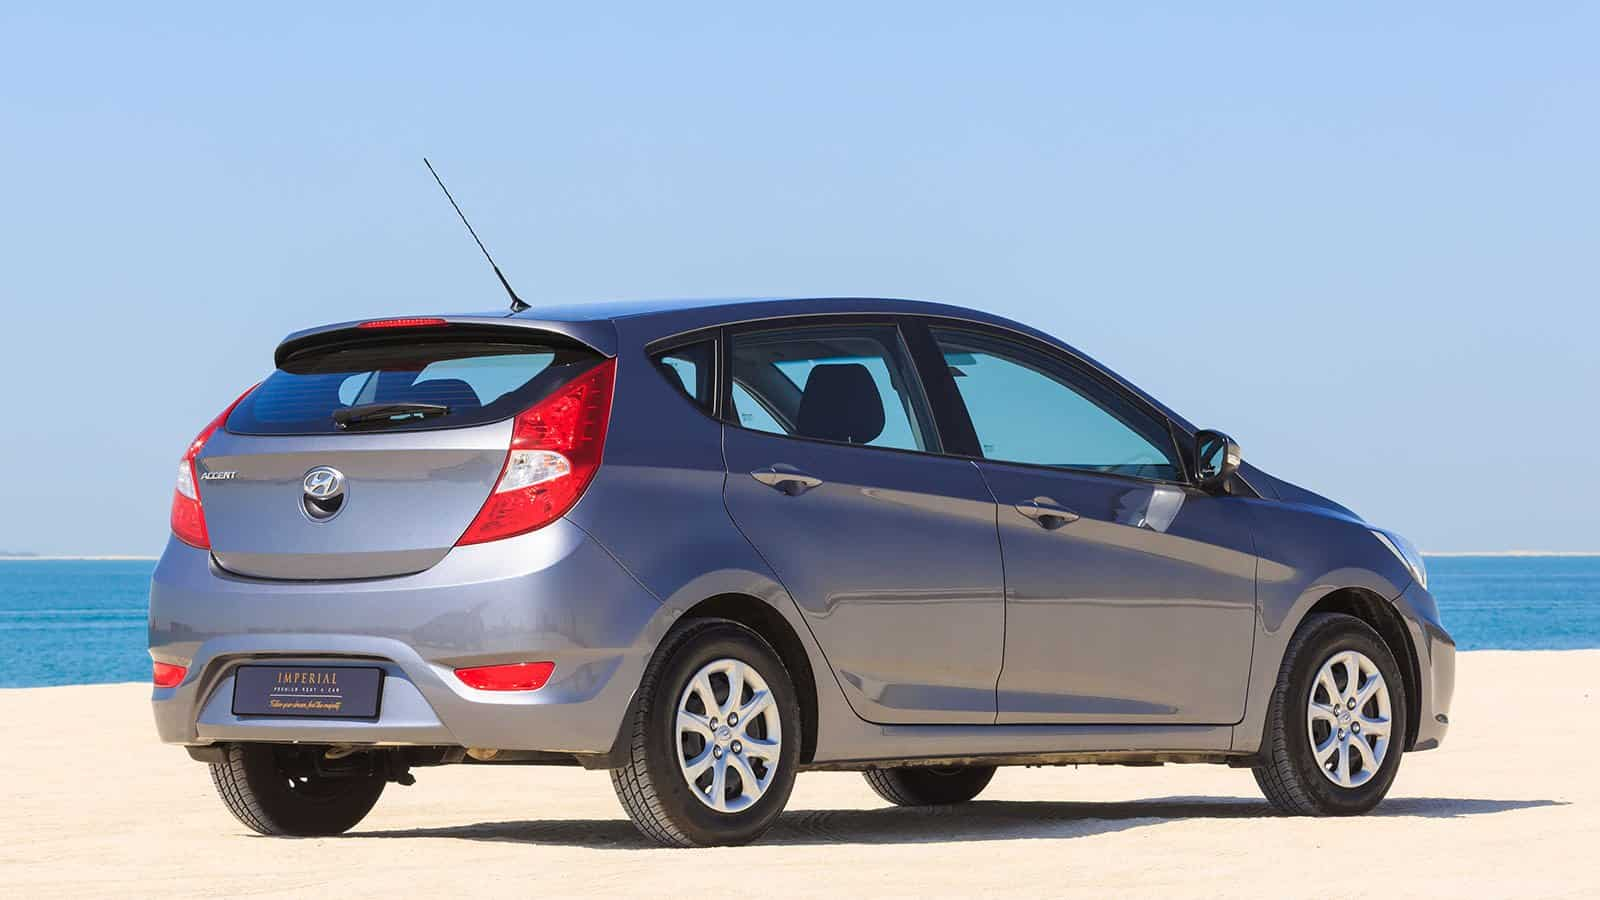 Hyundai Accent Hatchback Car Rental Dubai